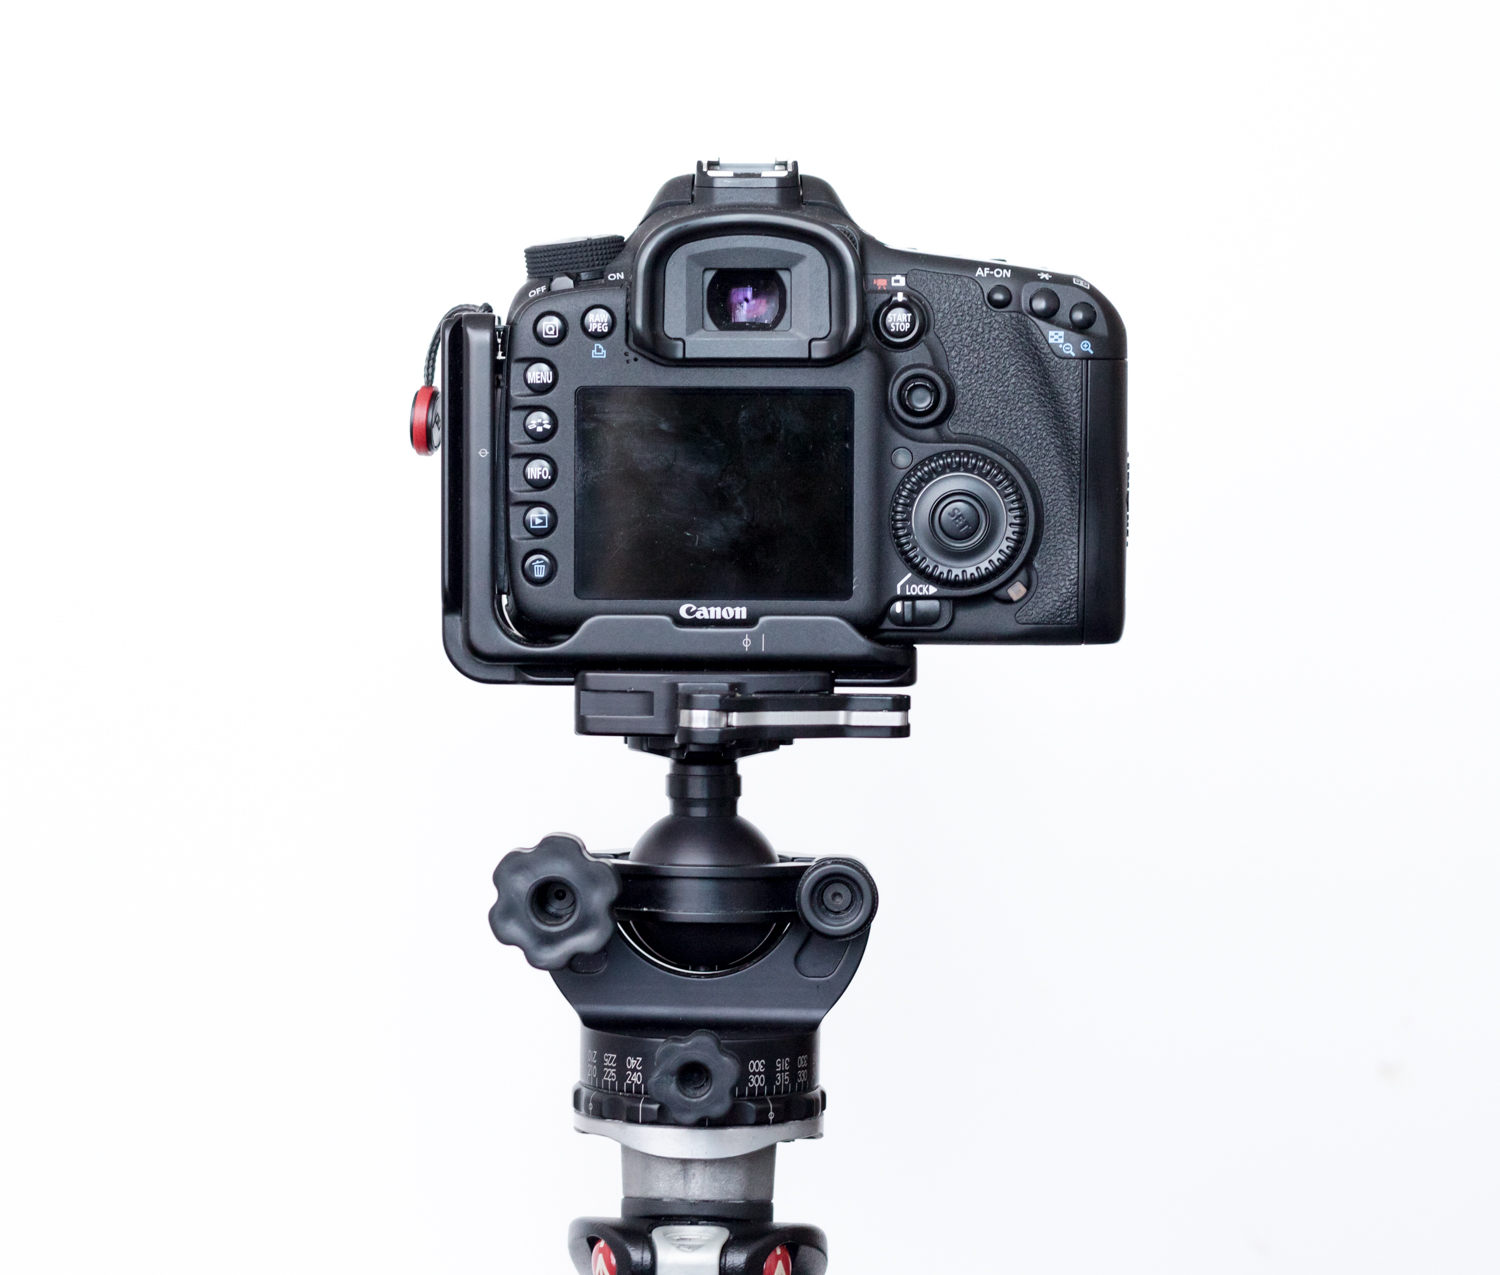 https://i1.wp.com/digital-photography-school.com/wp-content/uploads/2018/07/Acratech-tripod-review-withcamera-8.jpg?resize=1500%2C1275&ssl=1